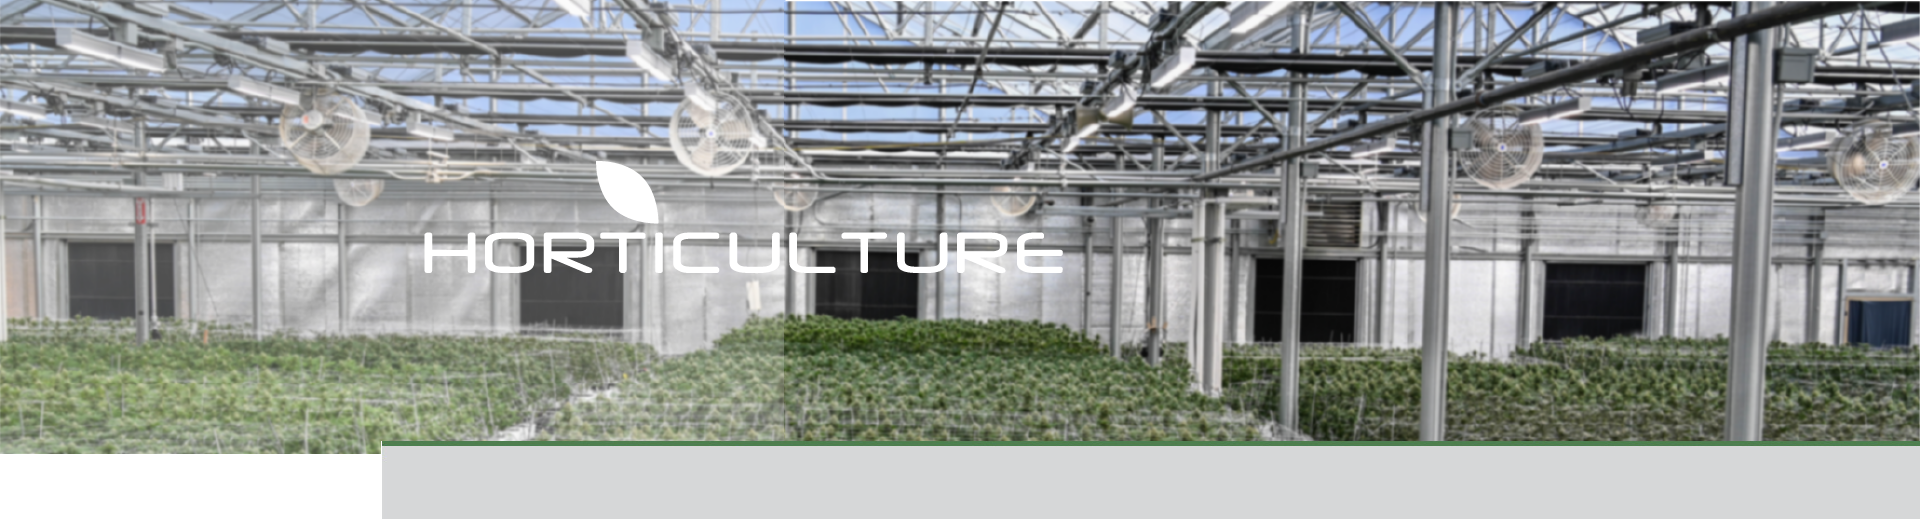 horticulture-Products-banner